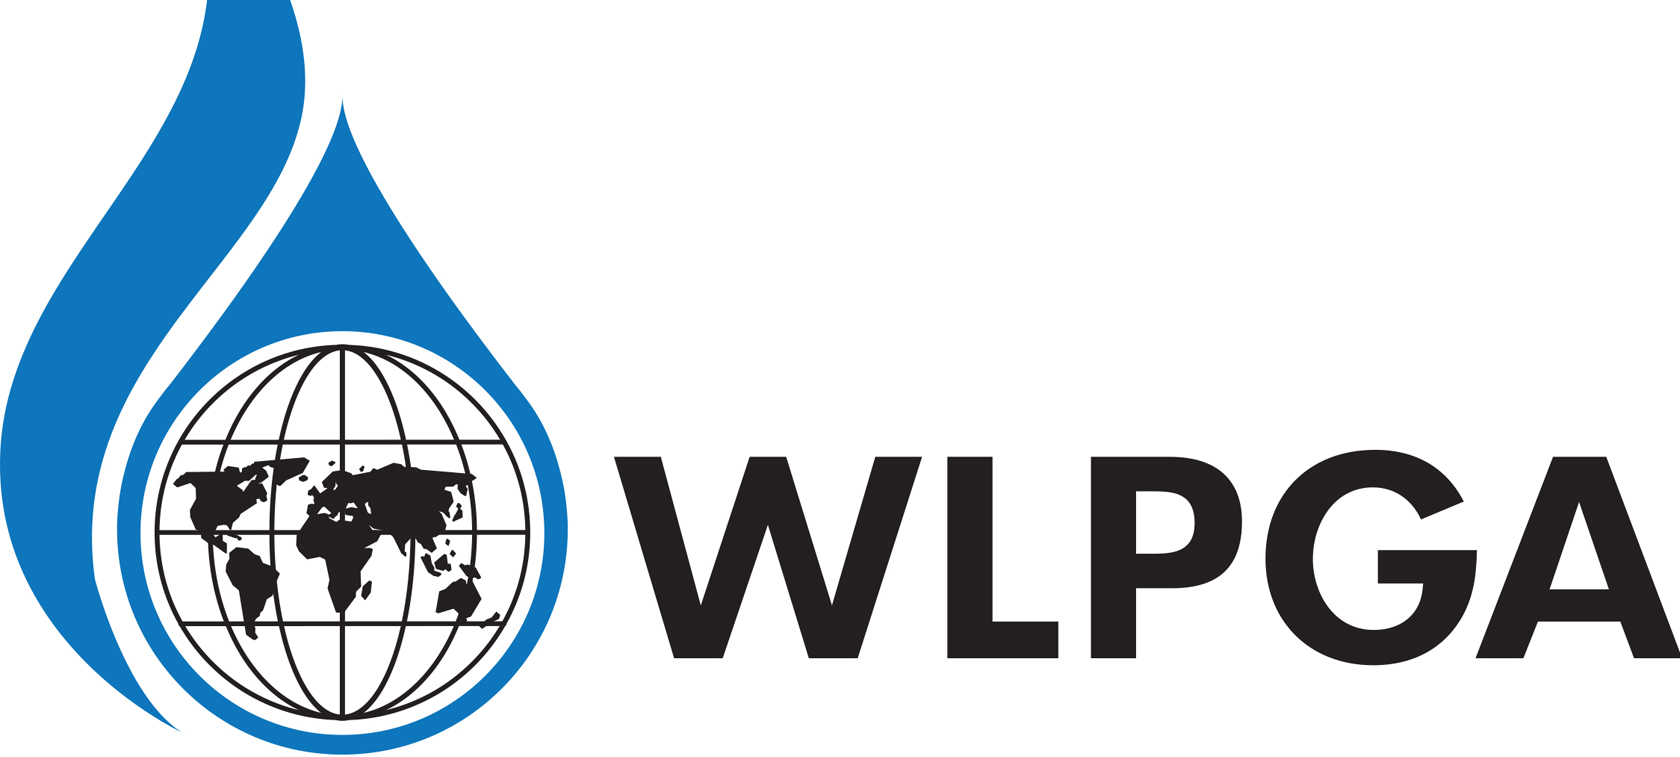 WLPGA's new logo - evolution not revolution